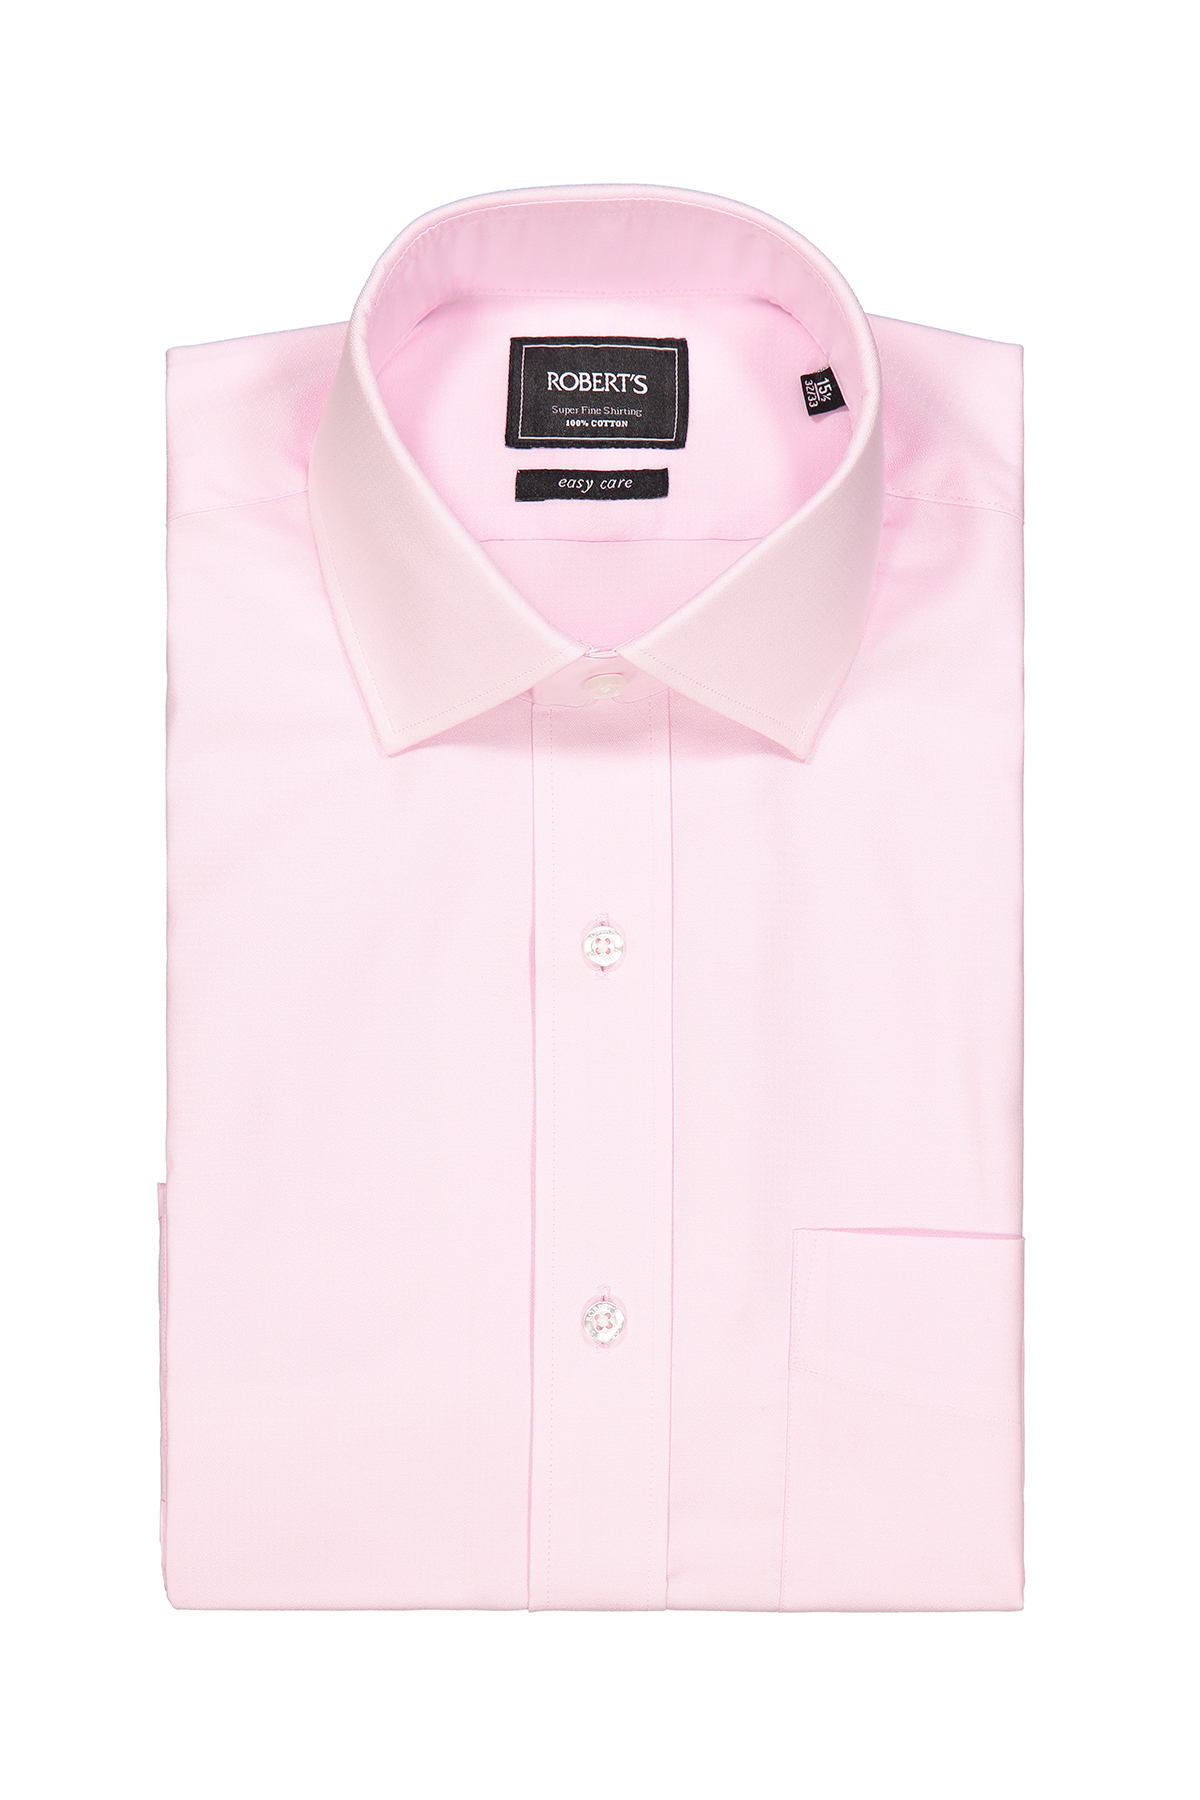 "Camisa Robert´s, slim fit, Easy Care"" poplin rosa lisa."